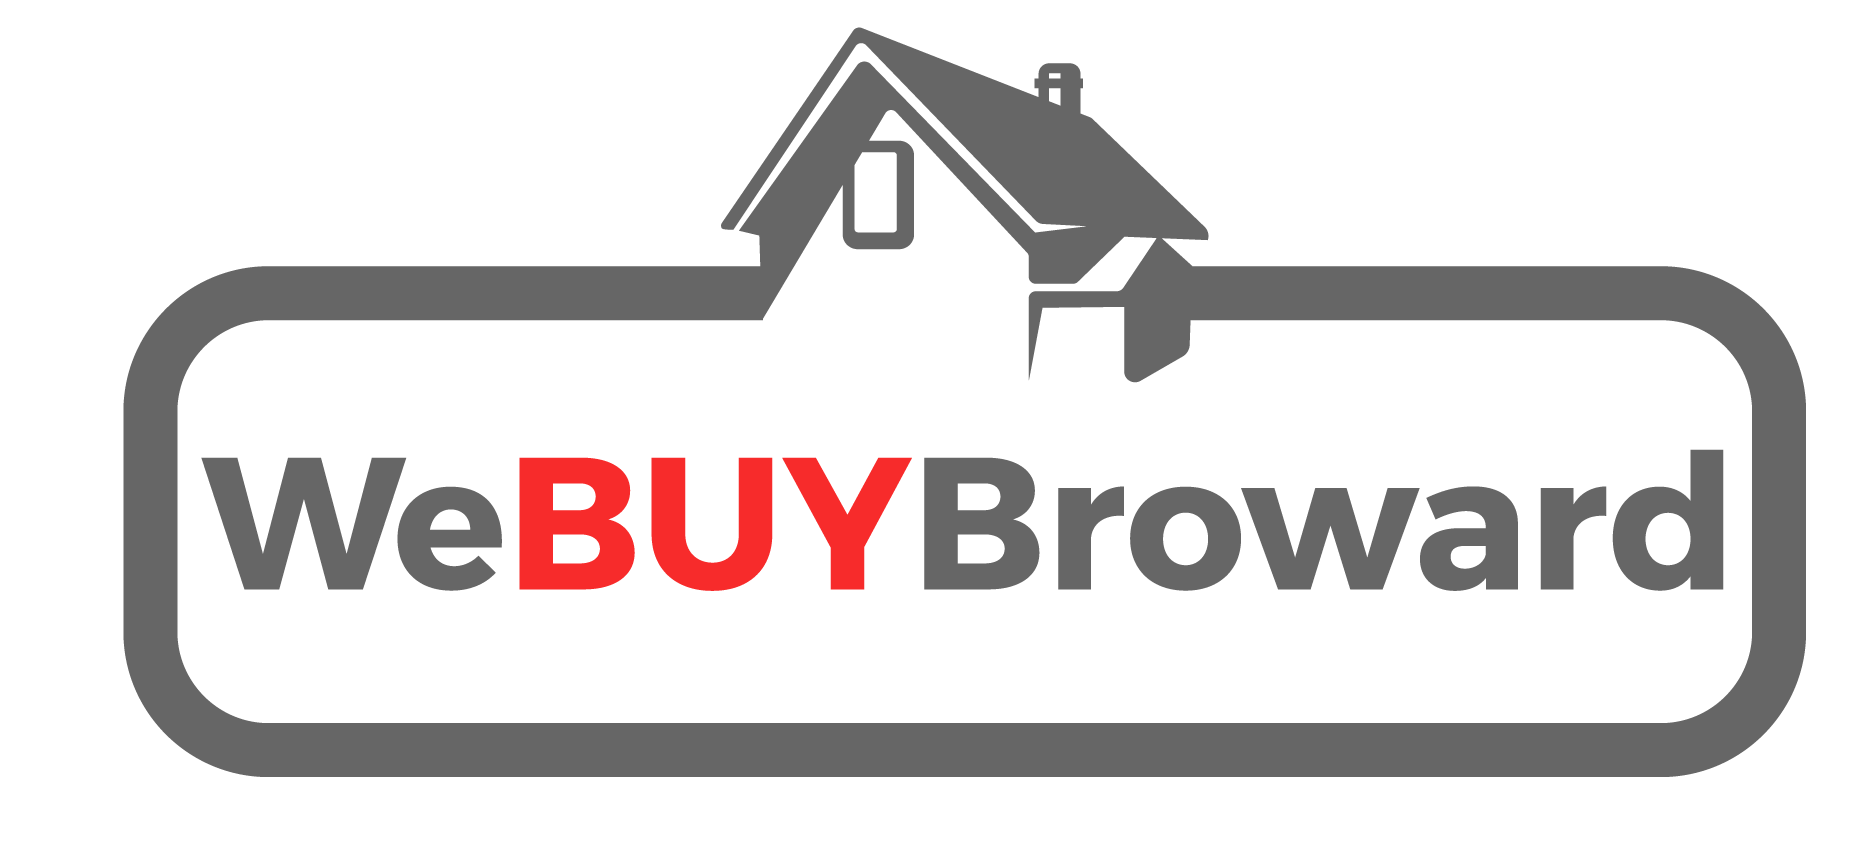 'We Buy Broward' Rescues Single Mother Losing Home from Tax Lien - We Buy Broward